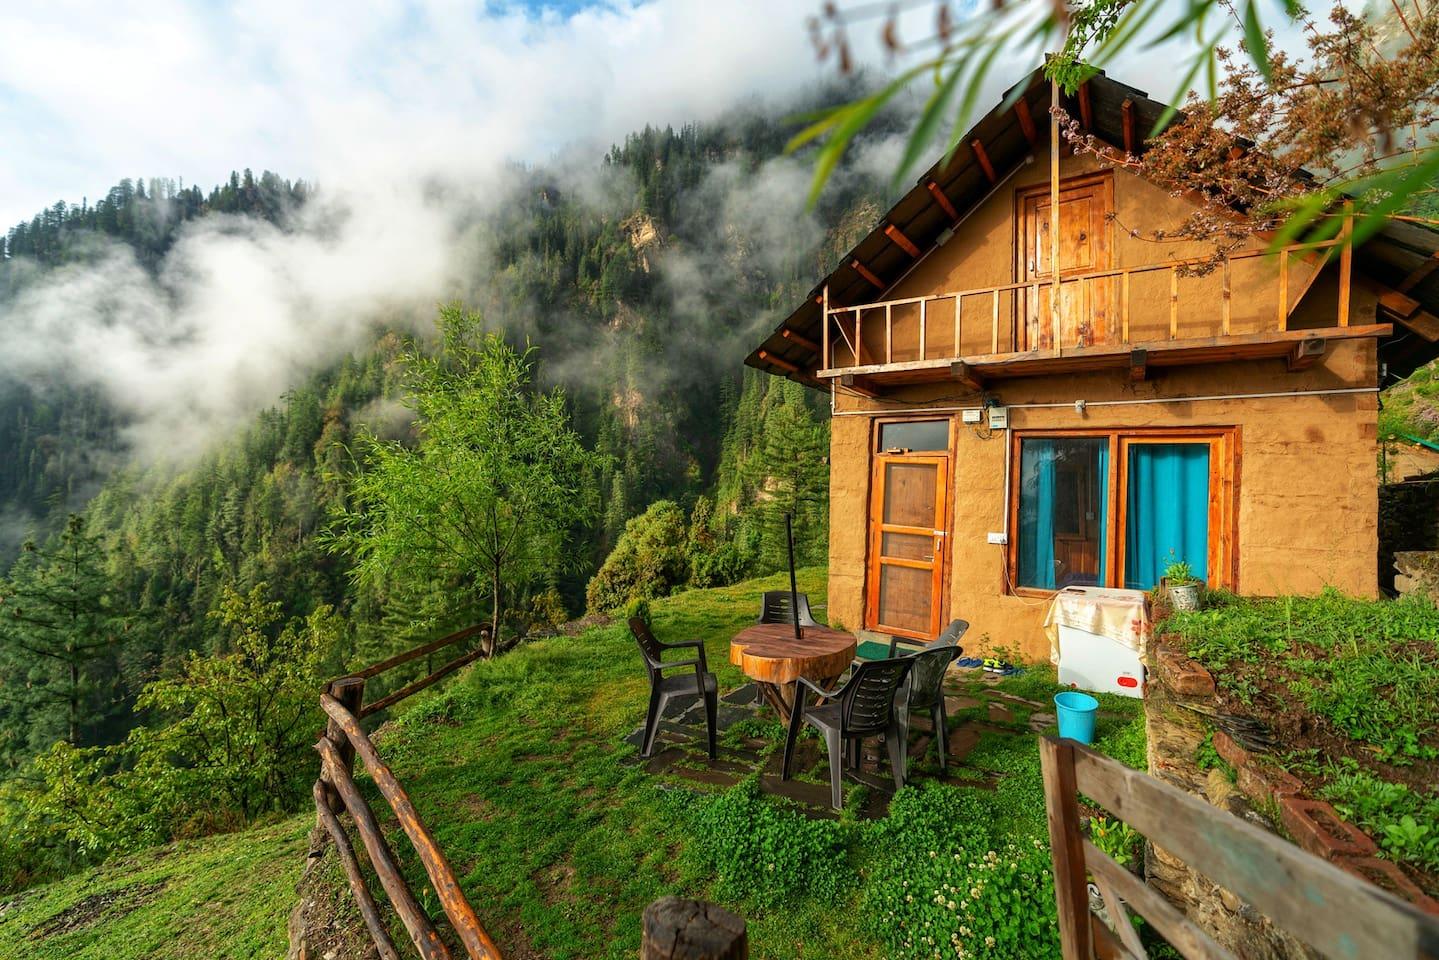 Our mountaintop cottage is surrounded by the forest on all sides. The most successful Airbnb in the town. We've a rating of 4.96, with 70, long, heartfelt reviews. The only property in Himachal with a rating of 4.96, among the ones with 50+ reviews.